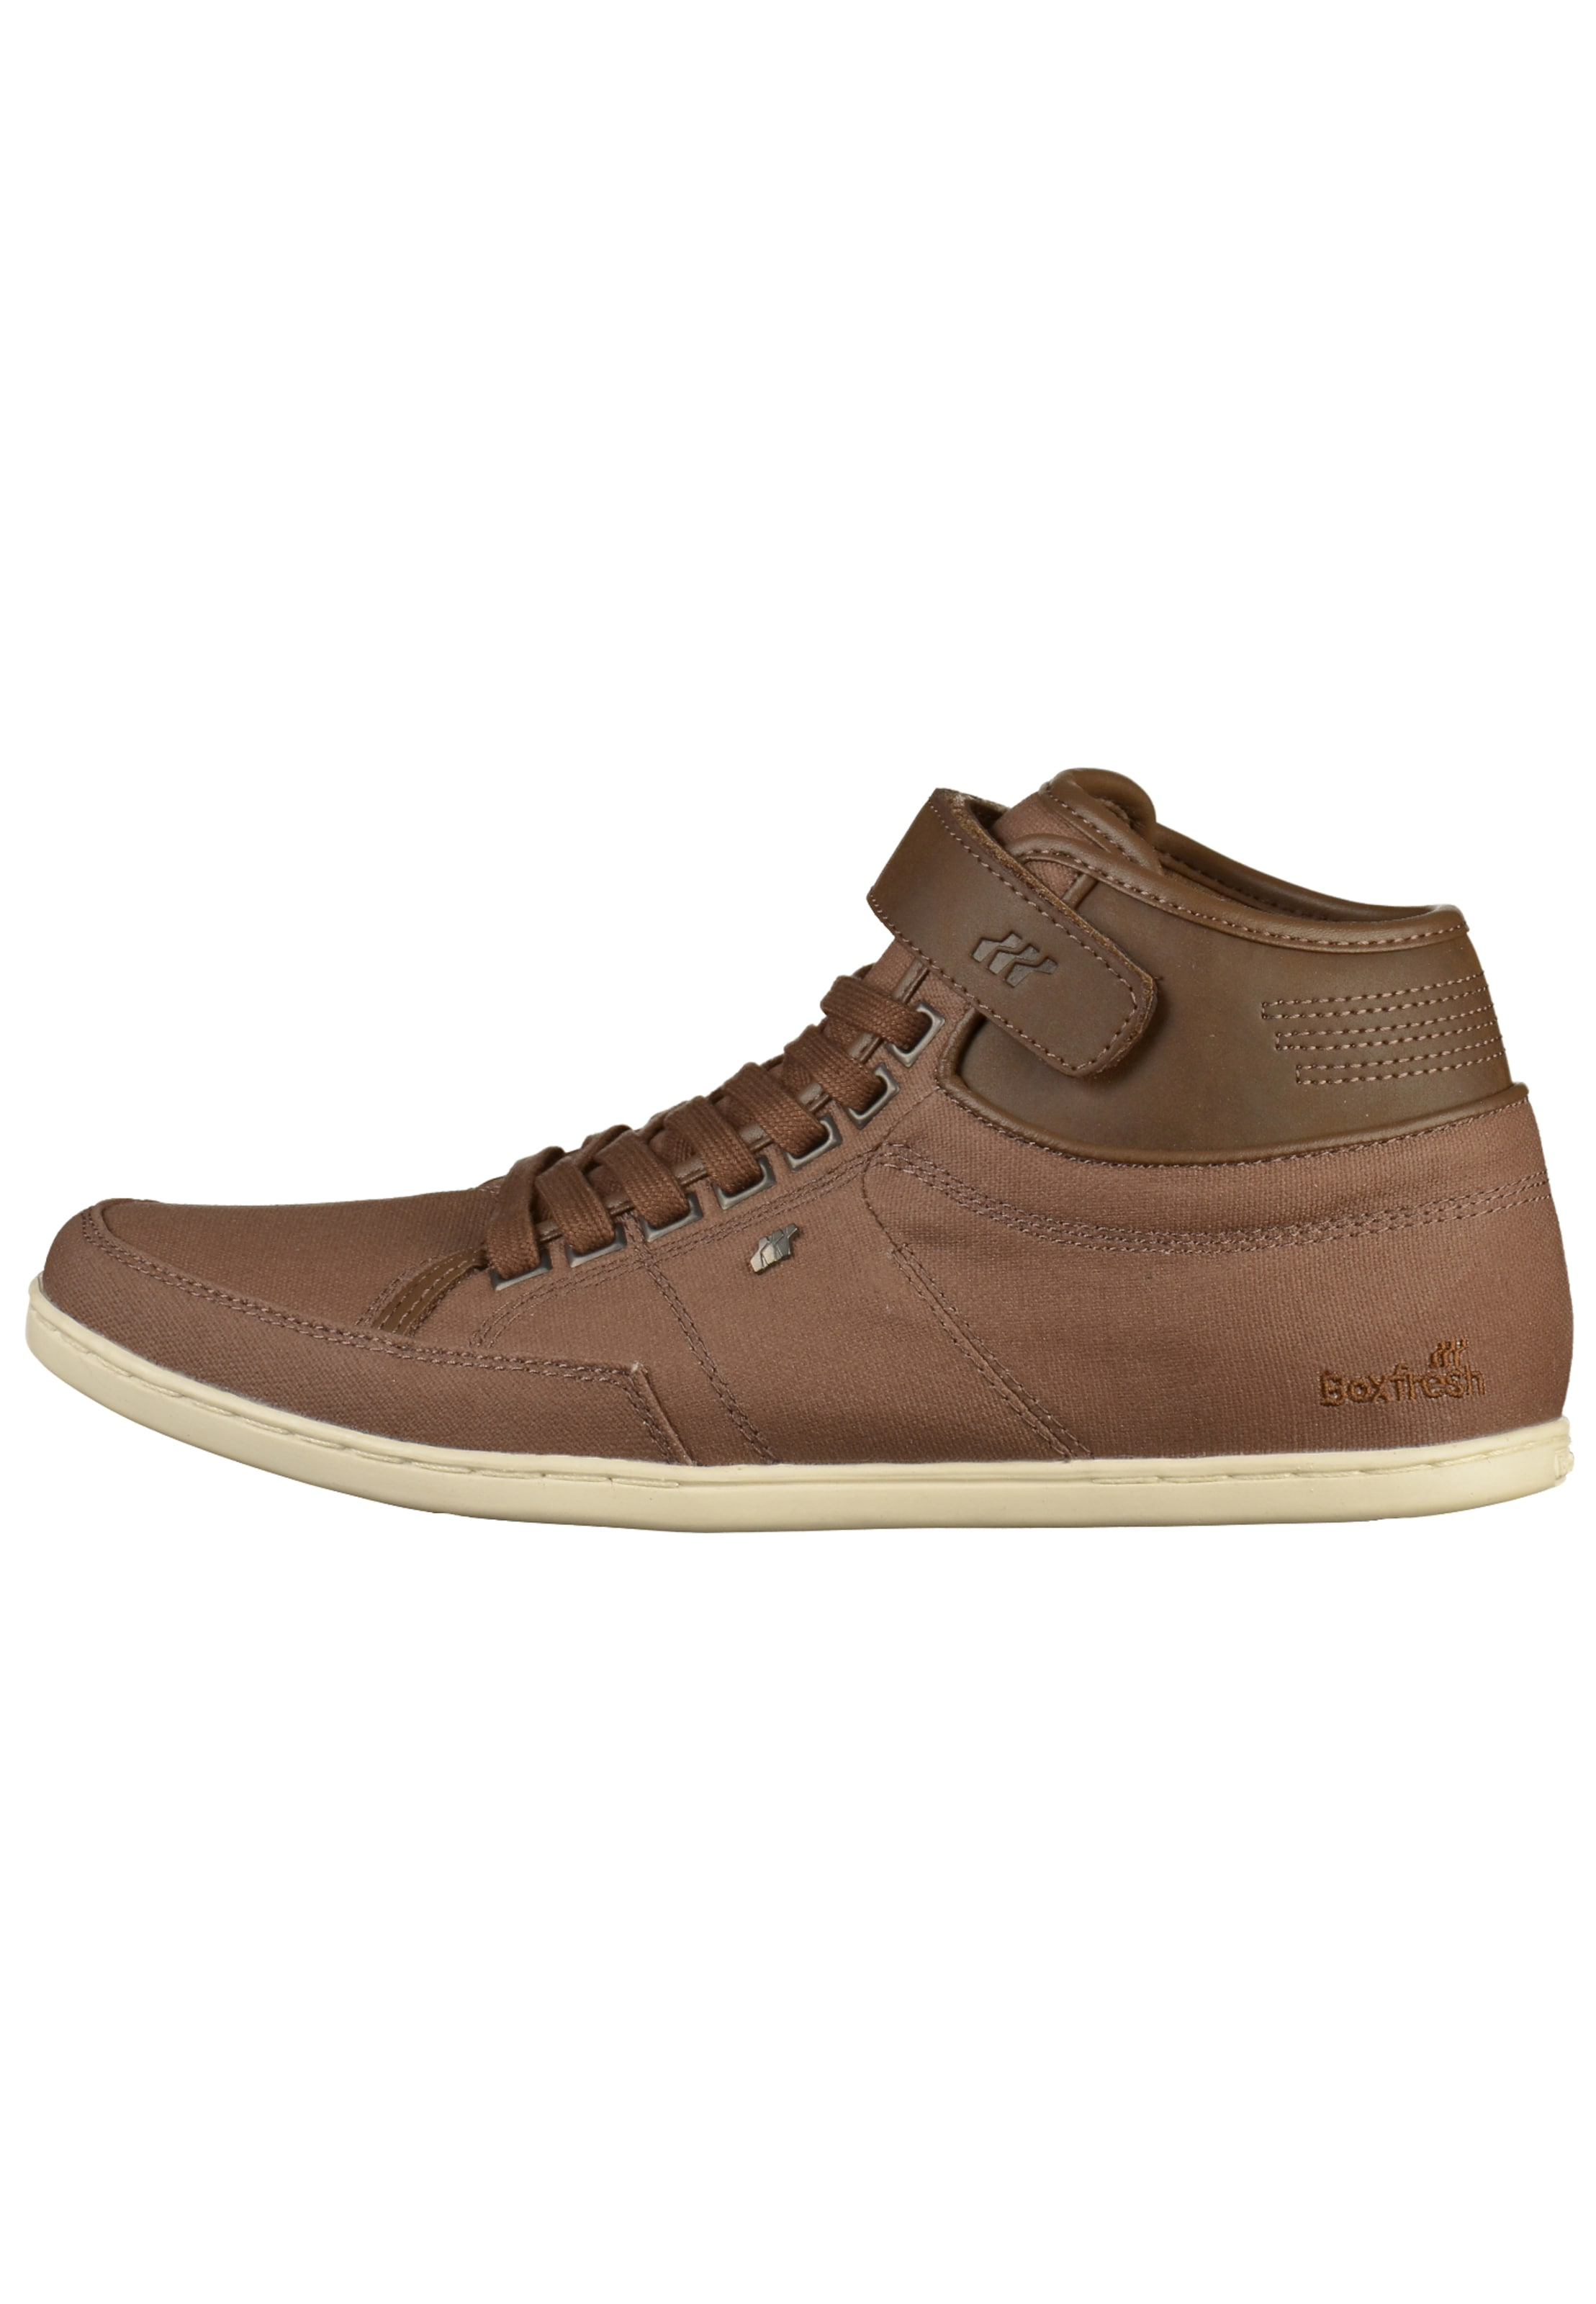 Boxfresh En Boxfresh Baskets Marron Hautes Baskets RLj3A5q4